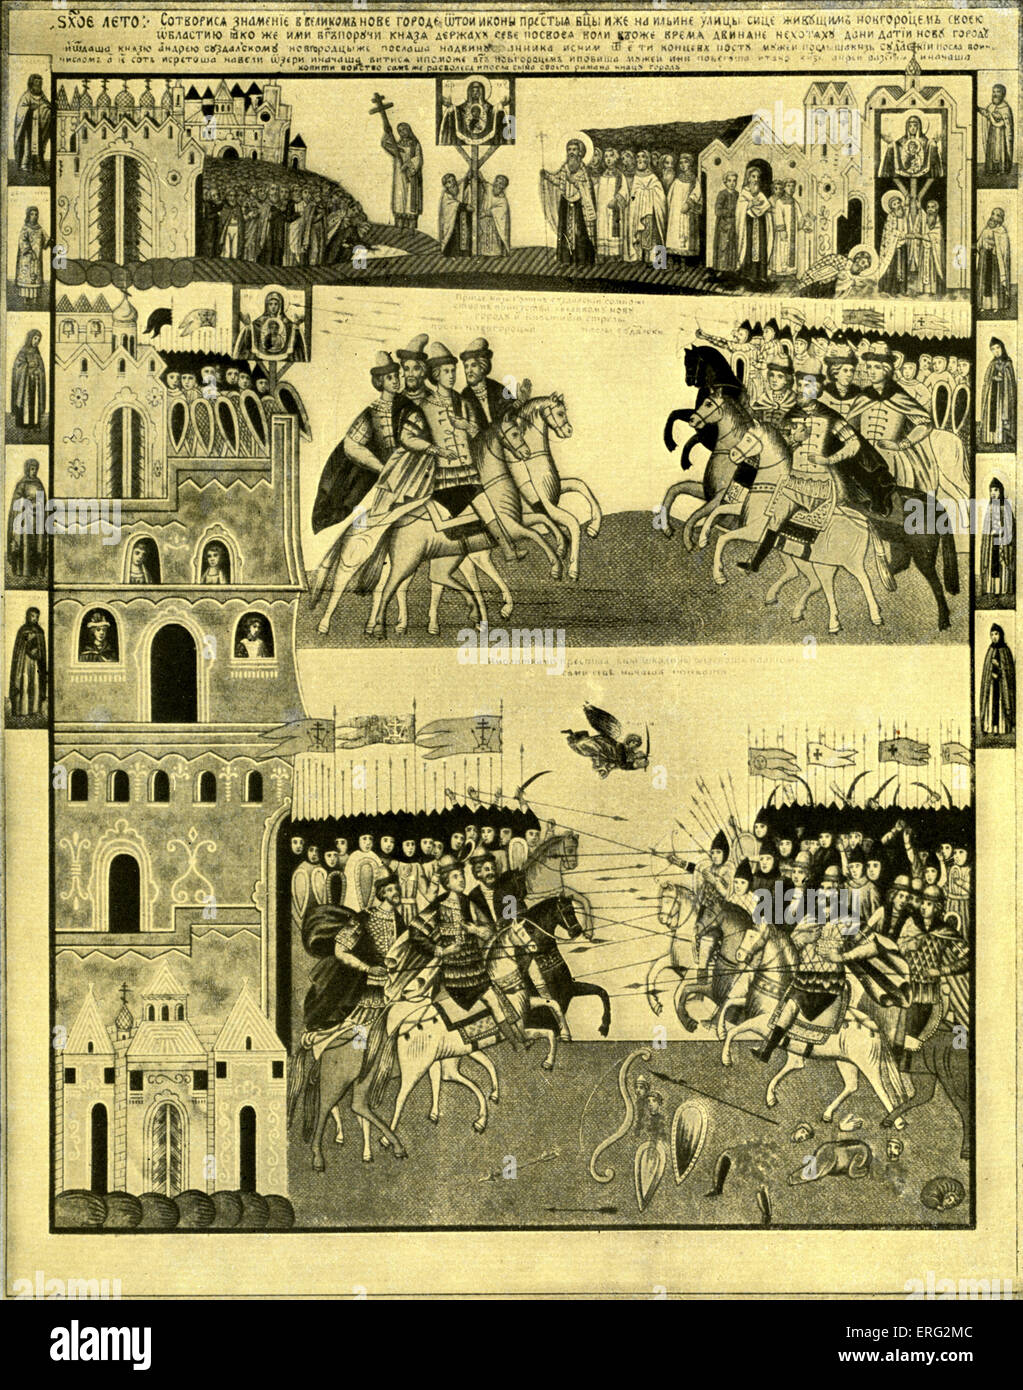 The victory of Novgorod over the combined forces of Suzdal, Smolensk and Ryazan in 1169.  Twelfth century Novgorodian - Stock Image